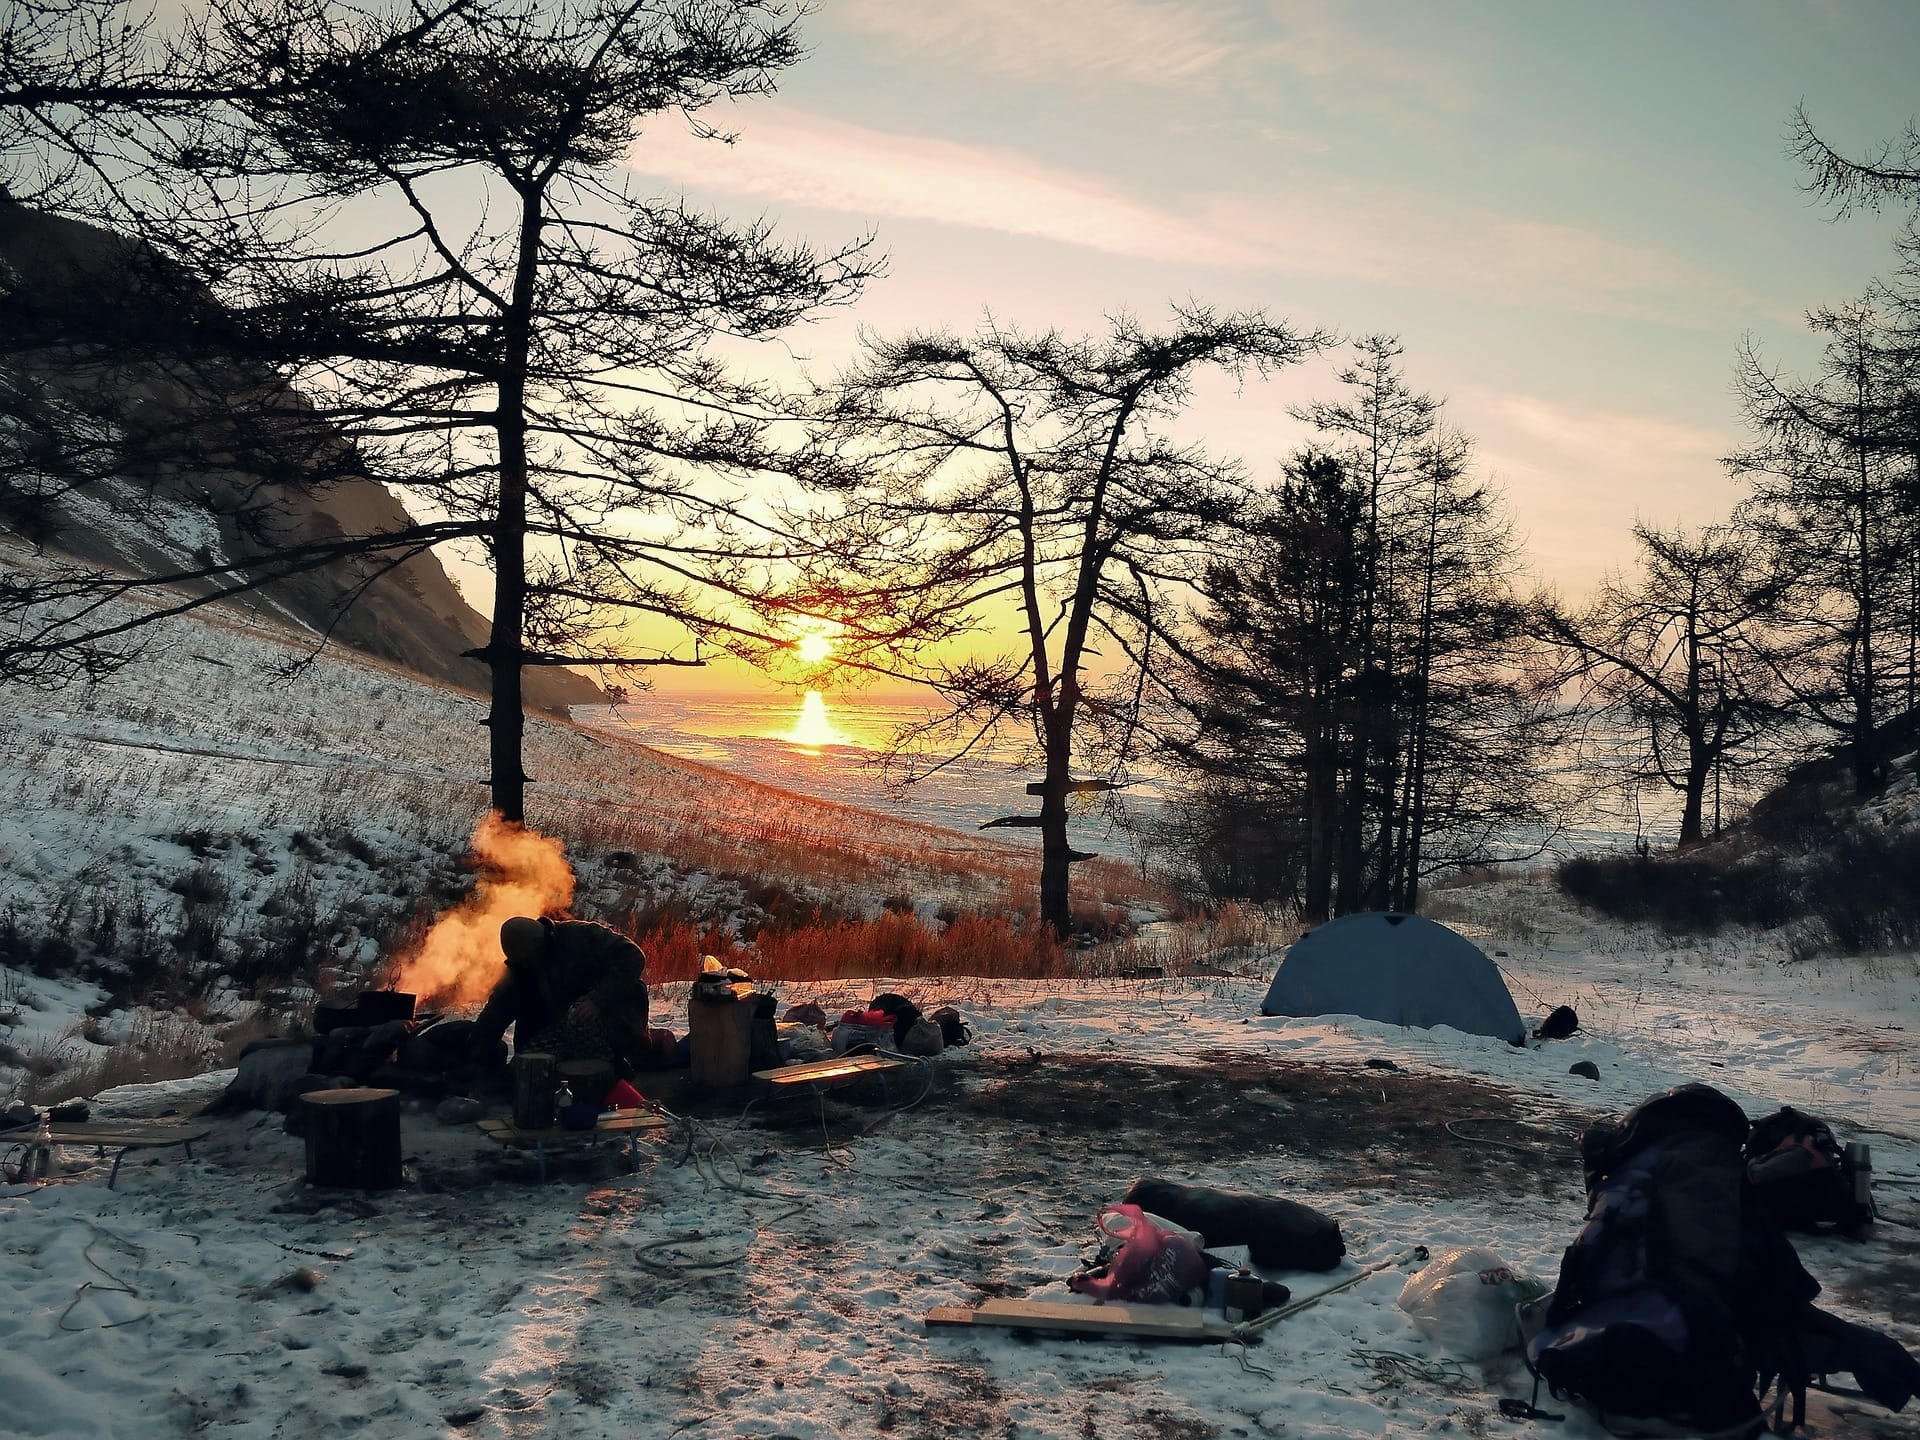 The Definitive Bushcraft Skills List -- No matter how impressive the strides in technology become, you will always want a balance of bushcraft skills. All it would take is a single EMP strike to severely limit those technologies.